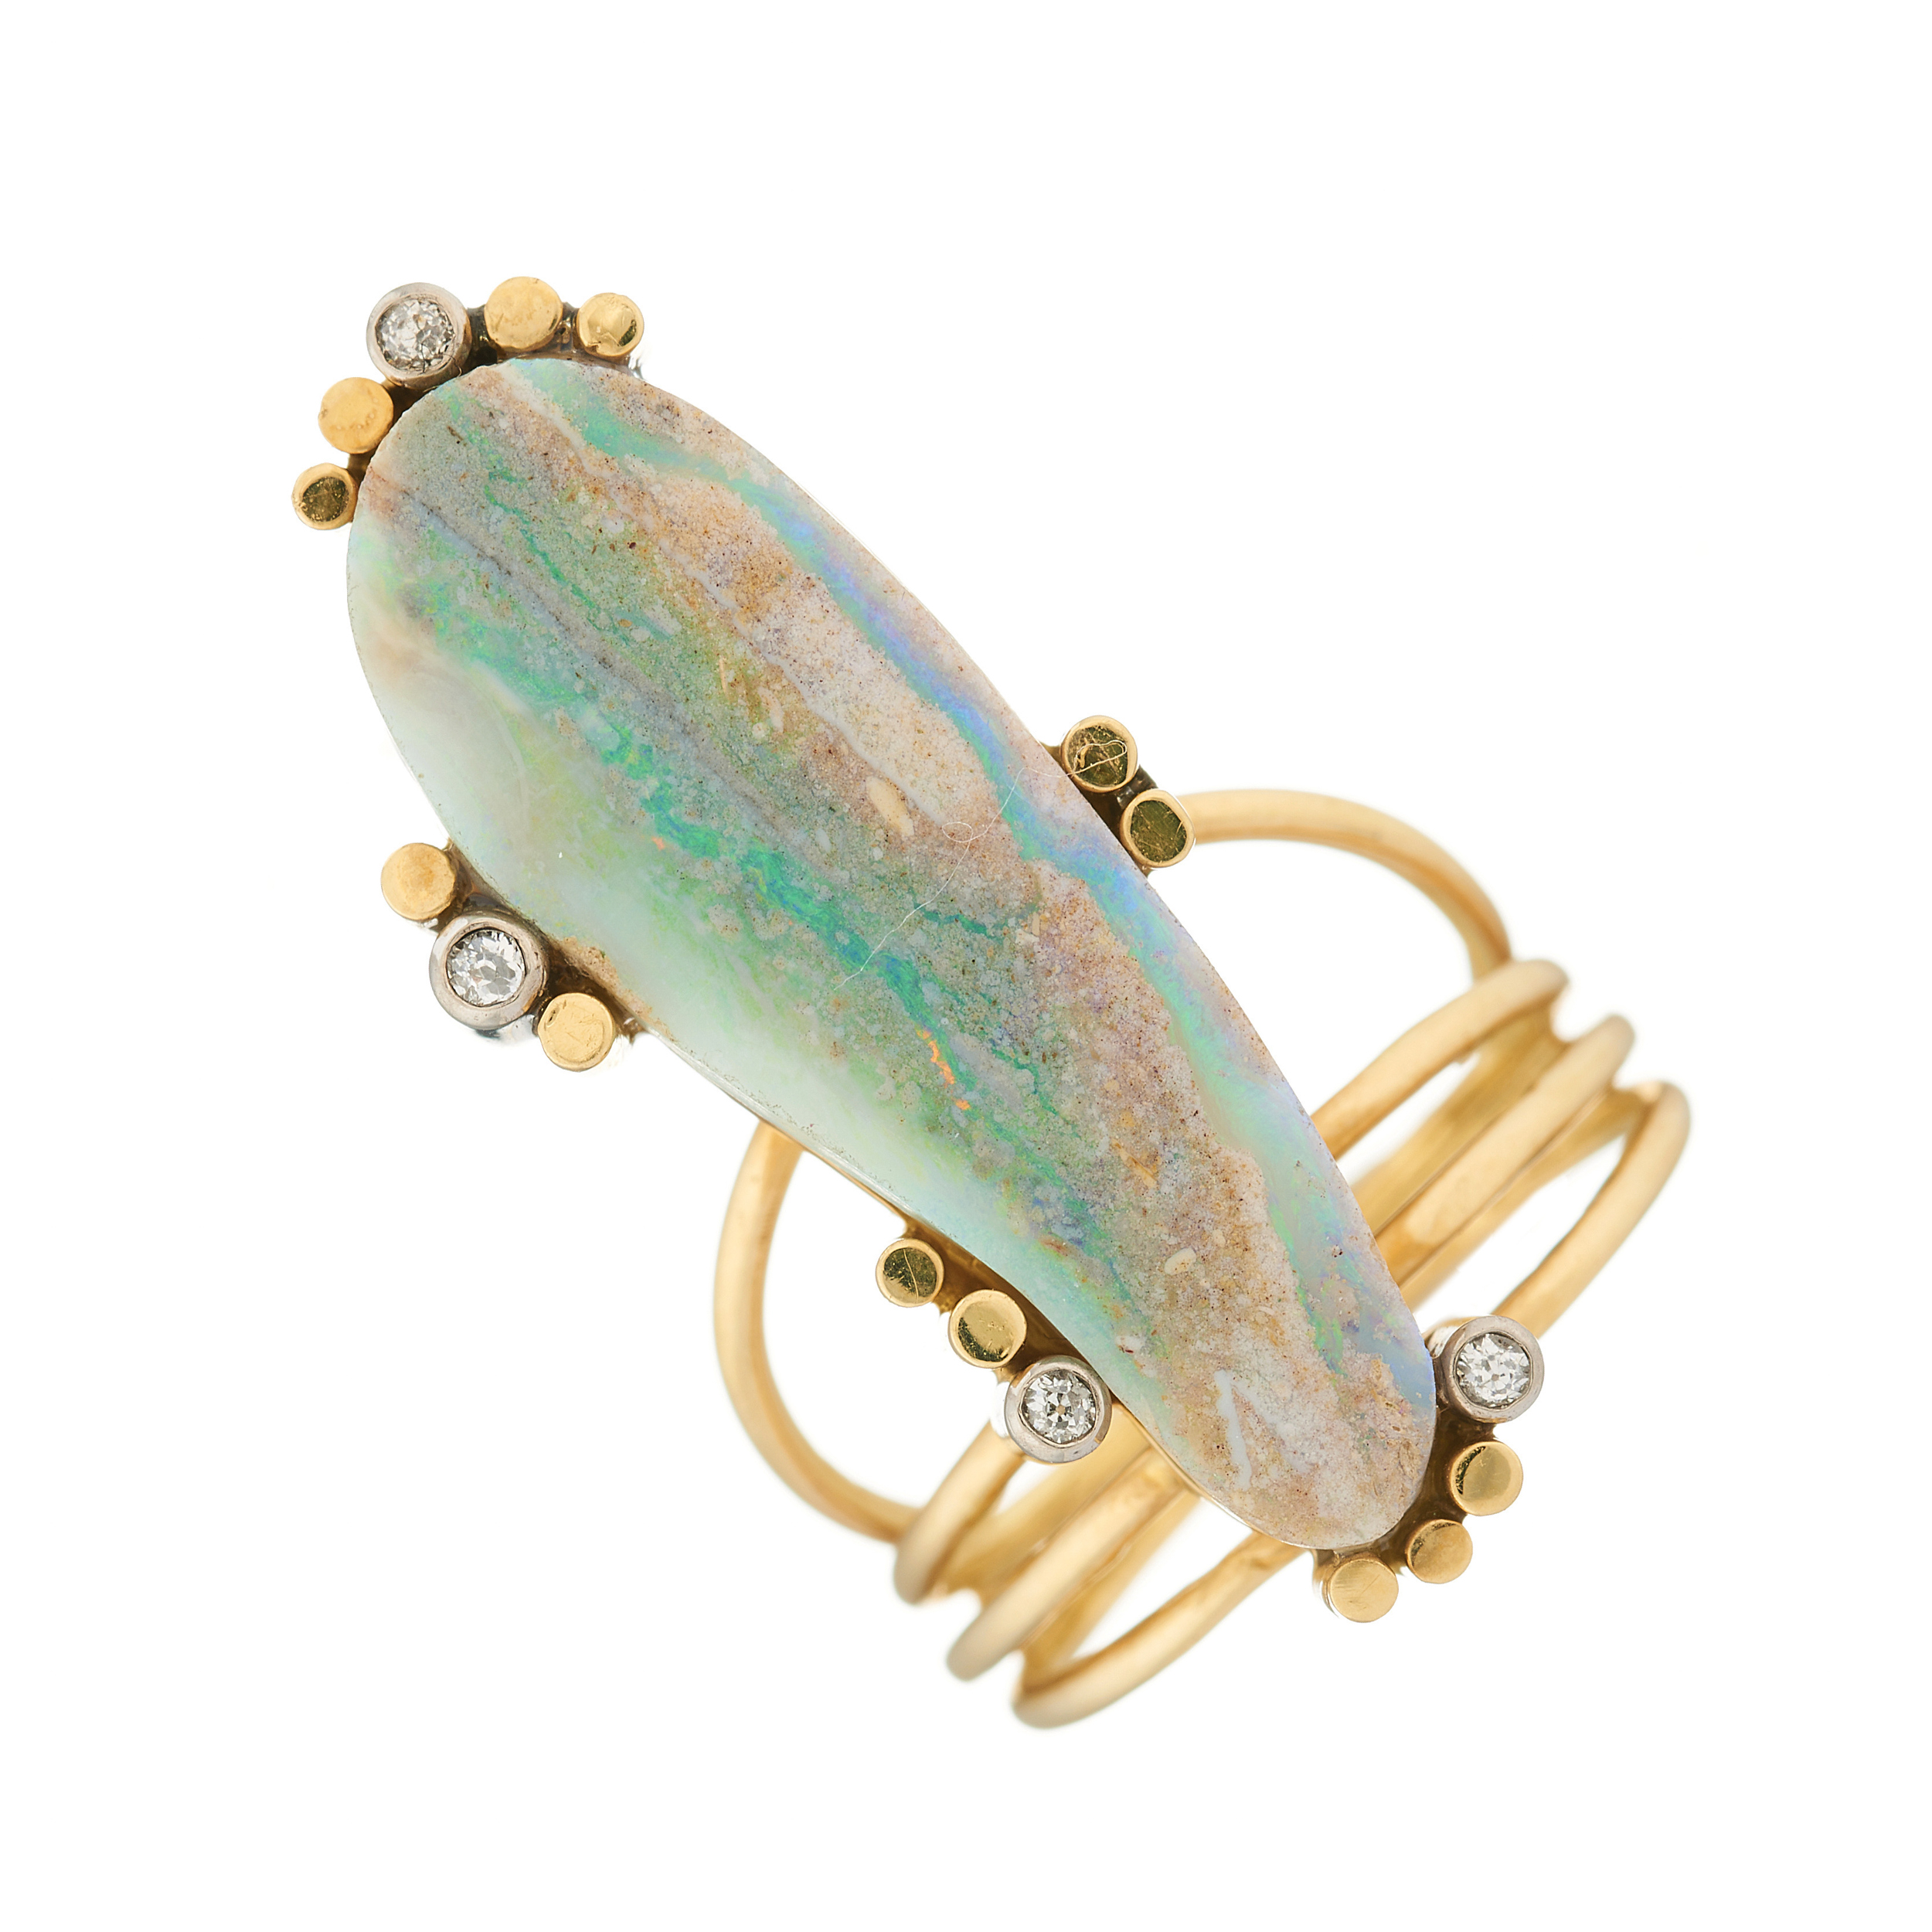 A mid 20th century 18ct gold boulder opal and diamond dress ring